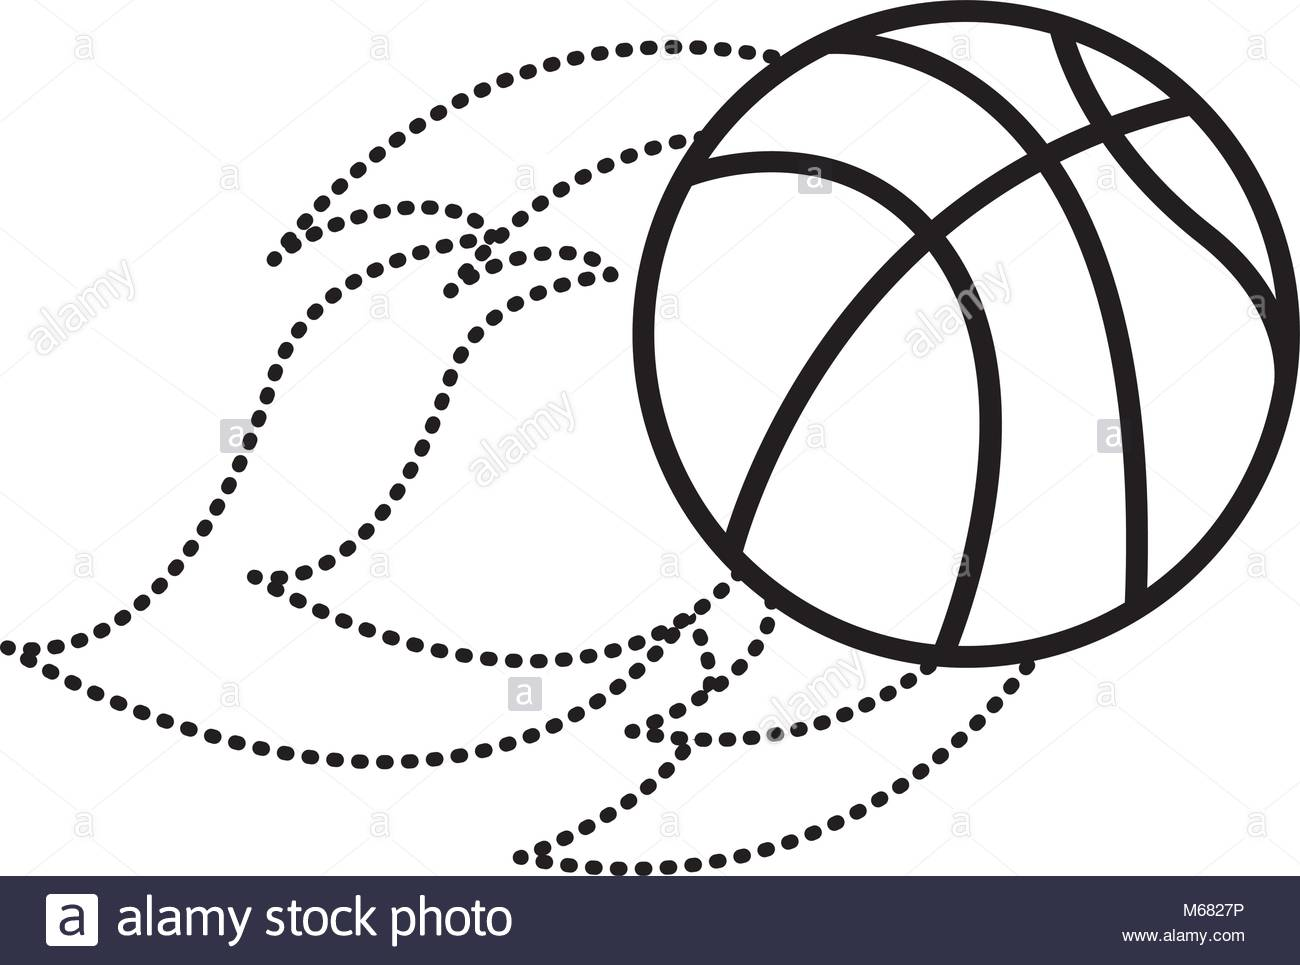 1300x965 Flying Ball Basketball On Fire Sport Vector Illustration Dotted